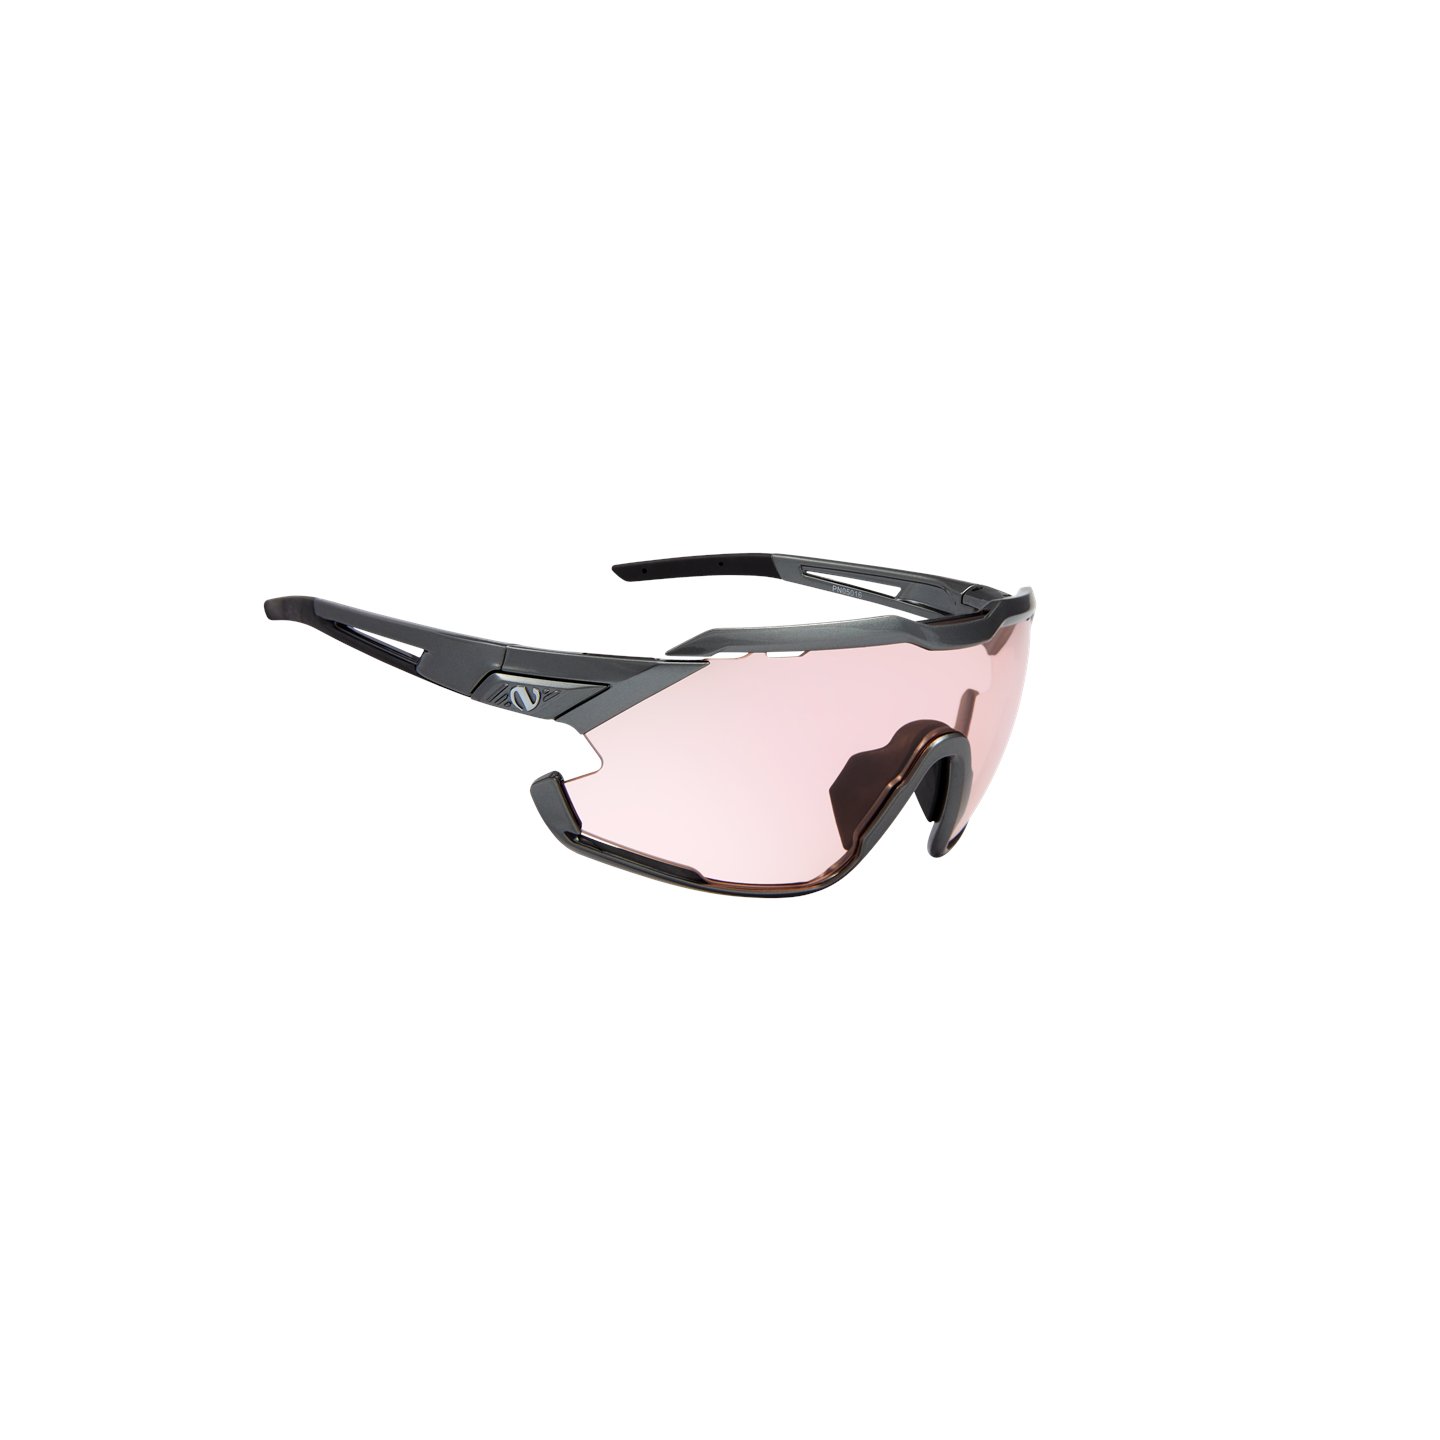 Northug Platinum Performance Standard, platinum/pink